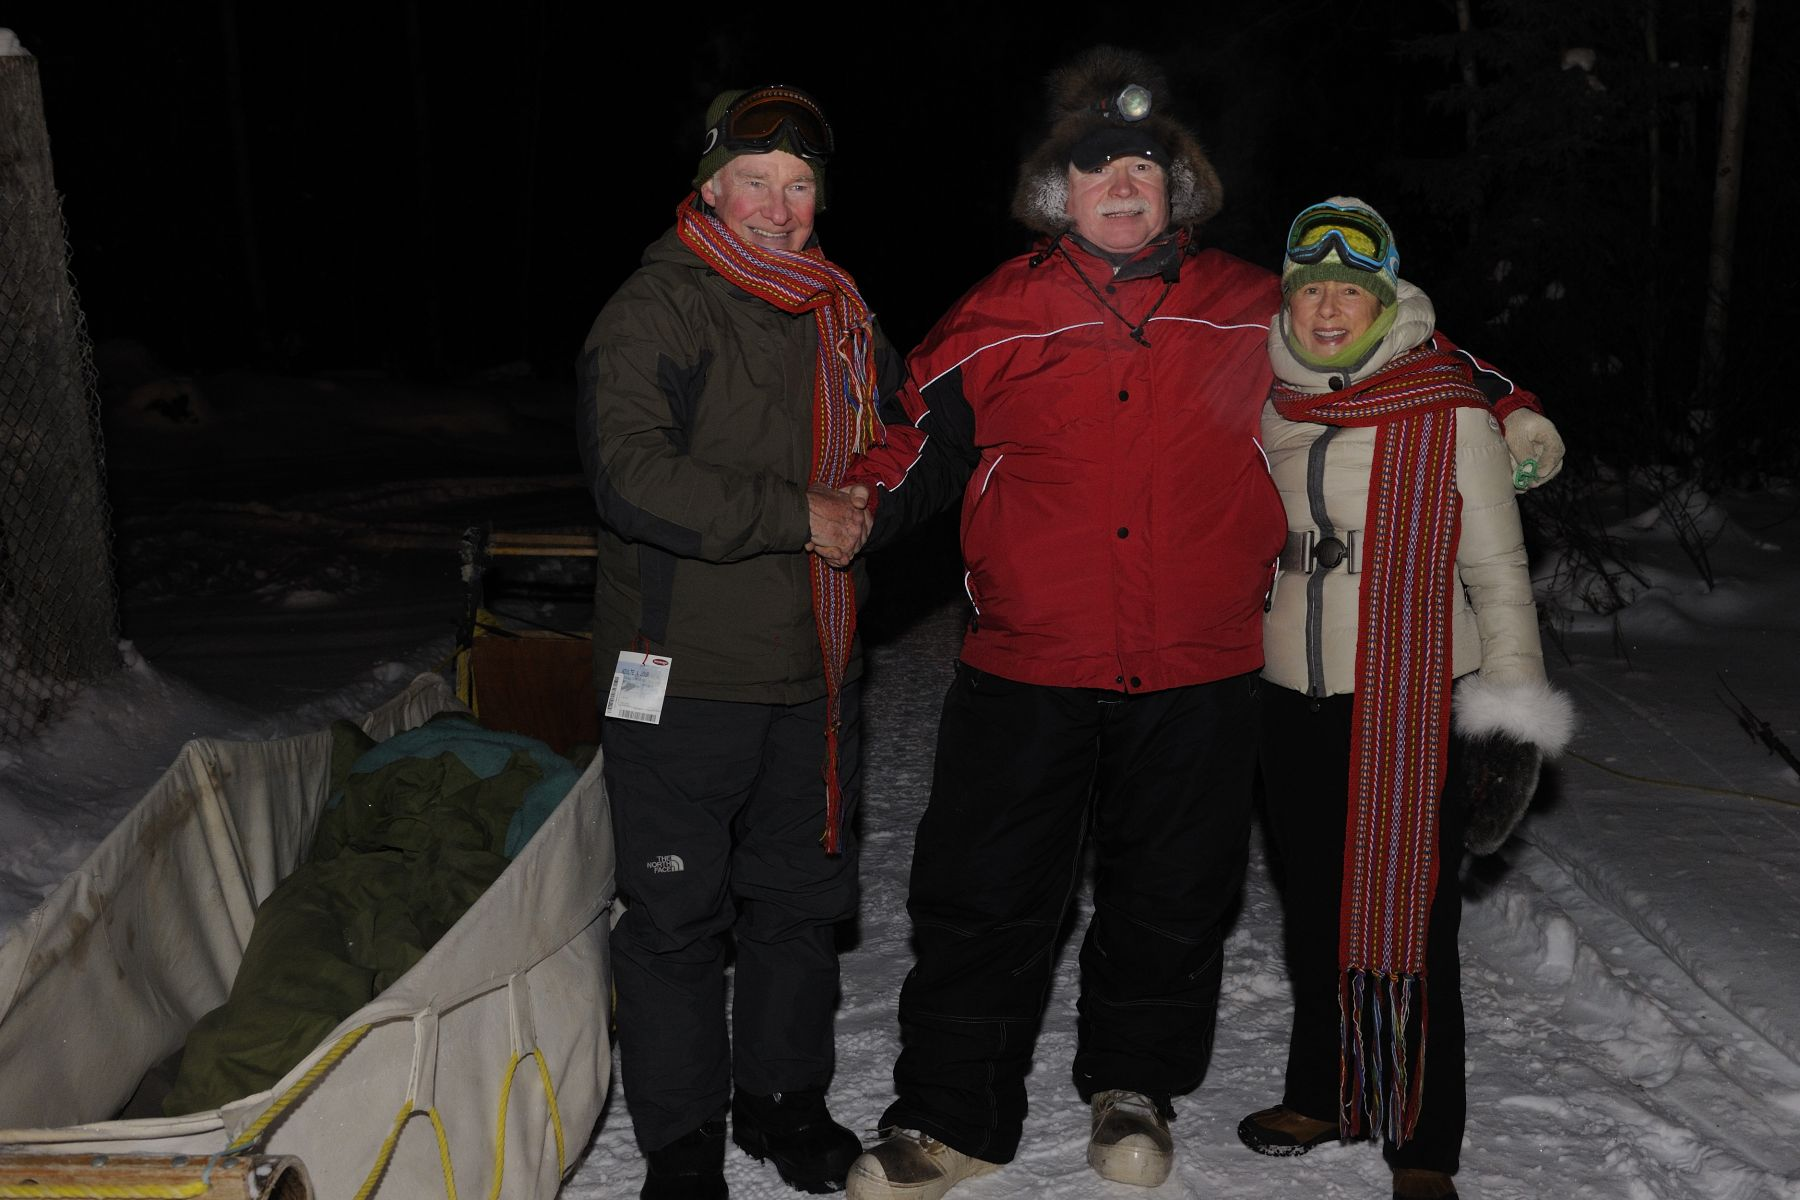 Their Excellencies also had the chance to participate in a traditional Métis dogsled ride, along with Mr. Beck of Beck's Kennels.